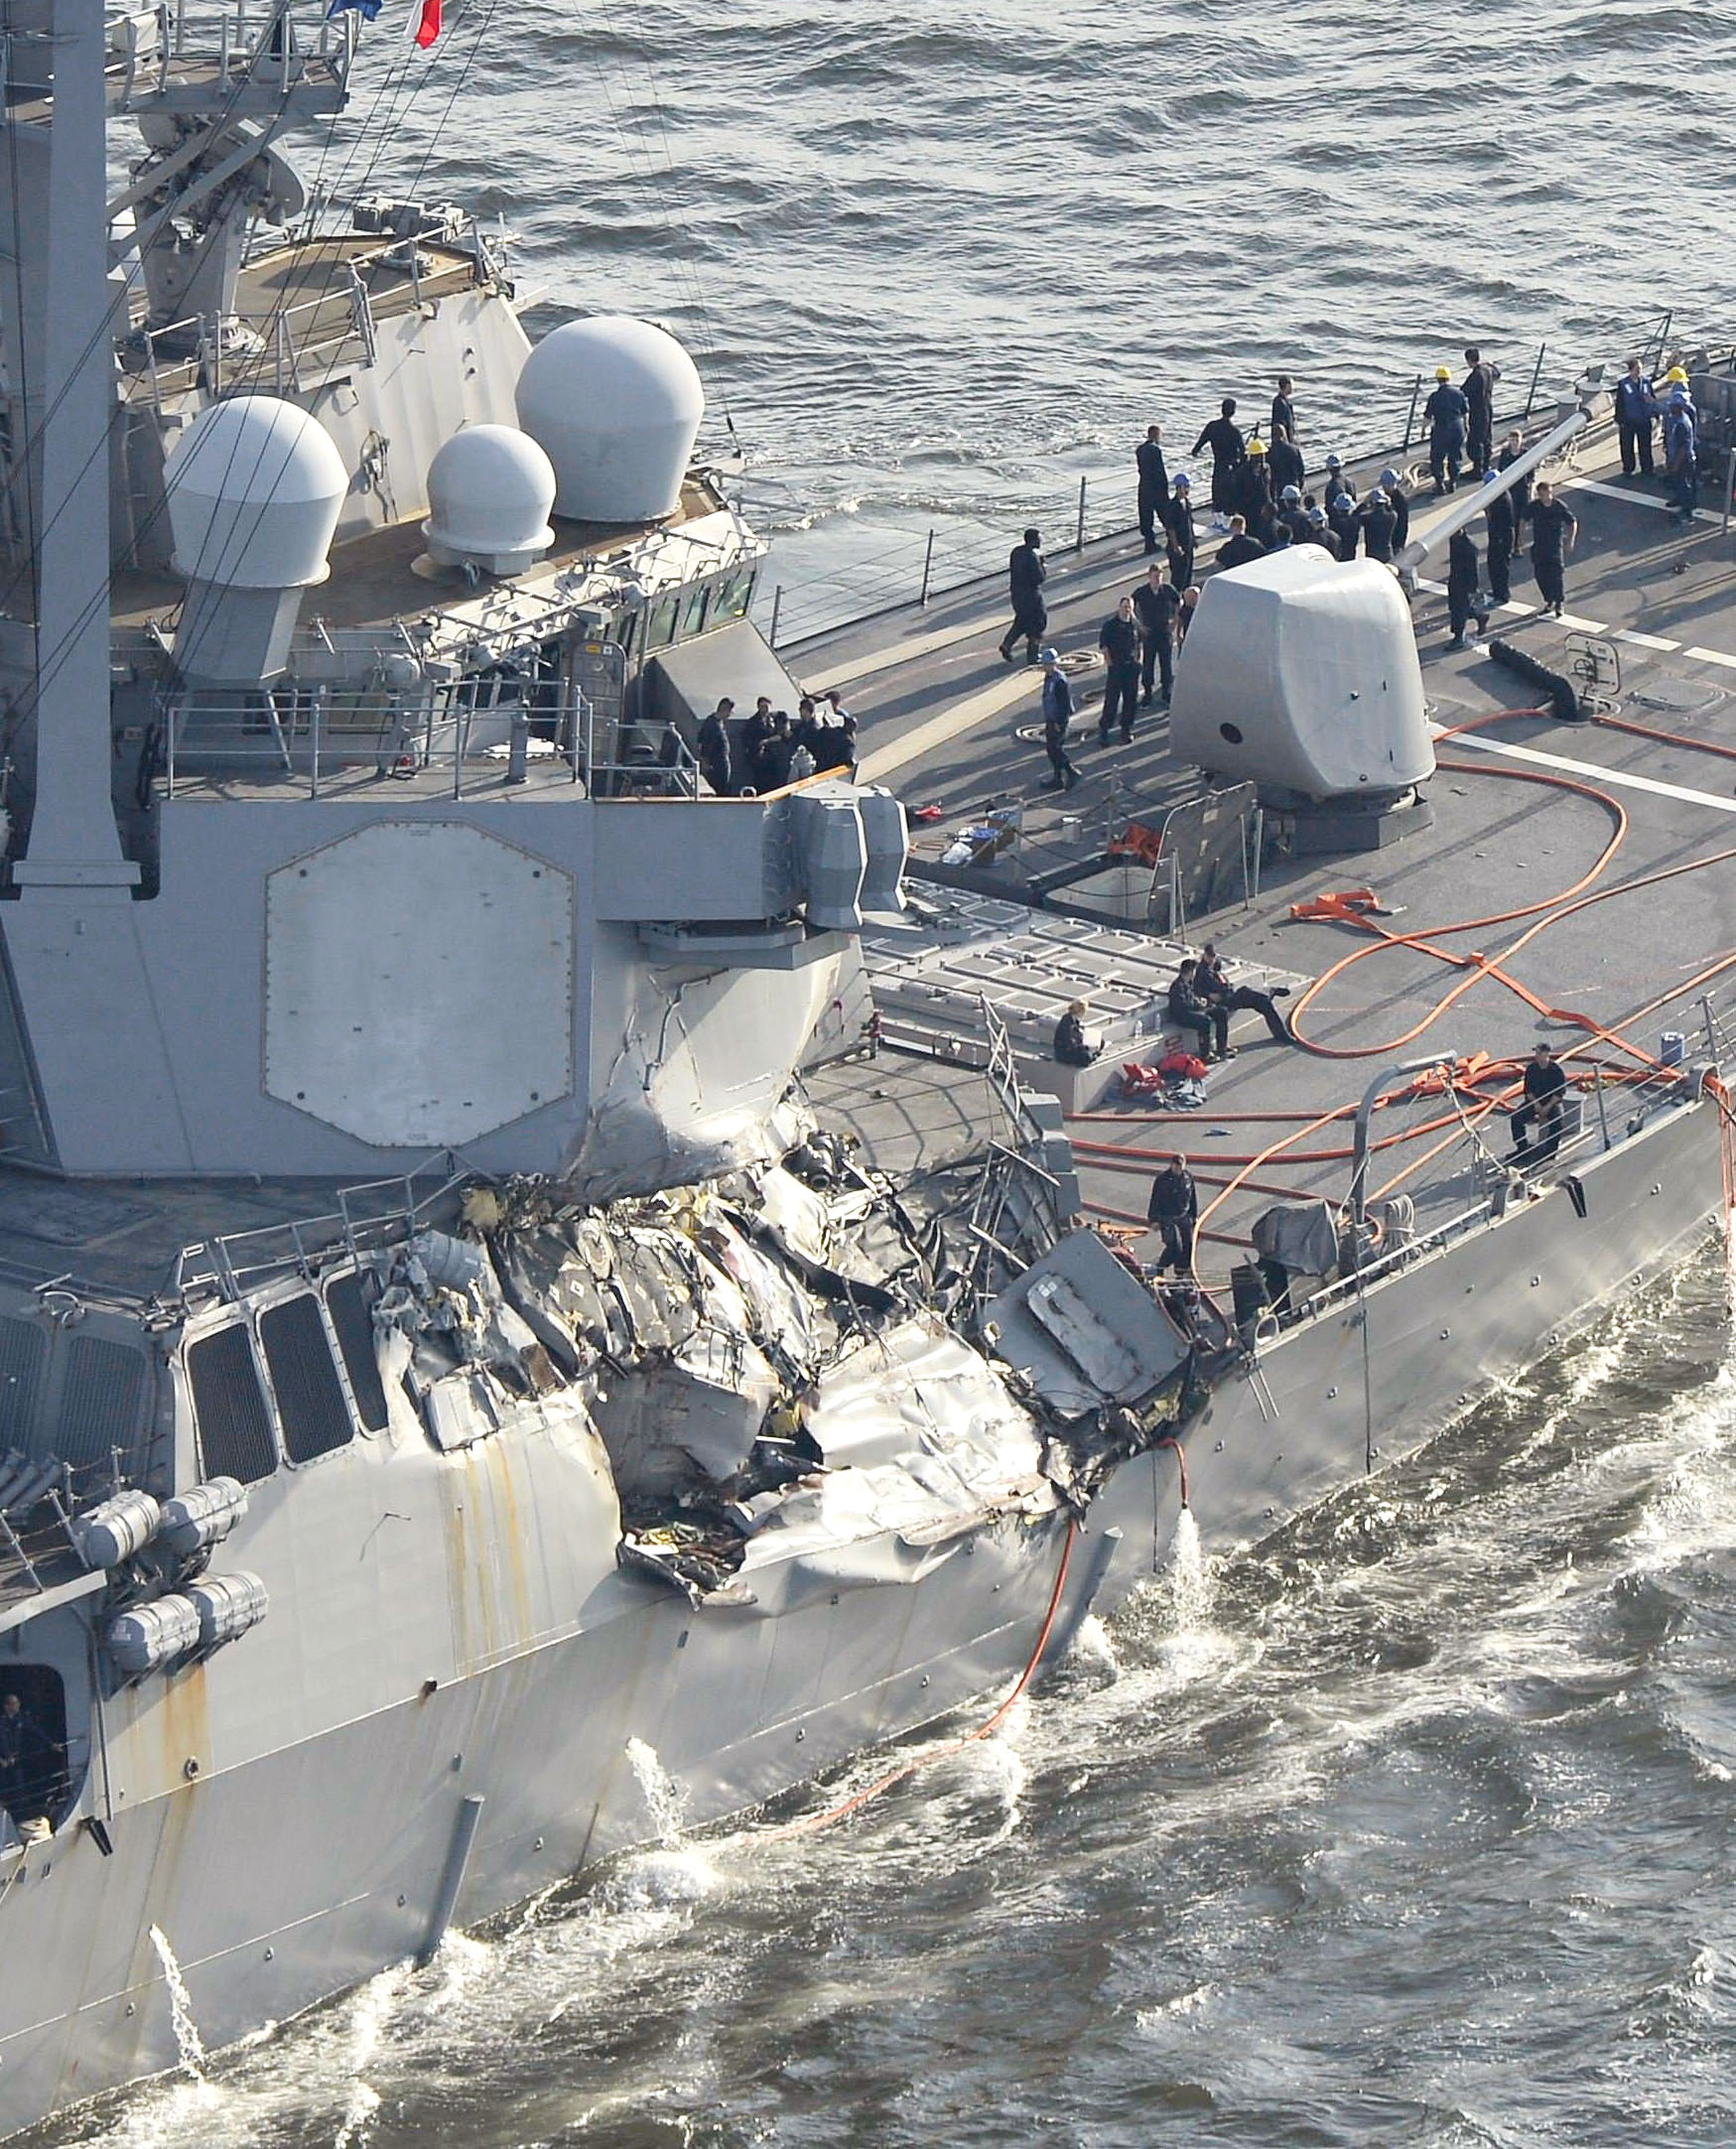 U.S. Navy ship collides with container ship off Japan